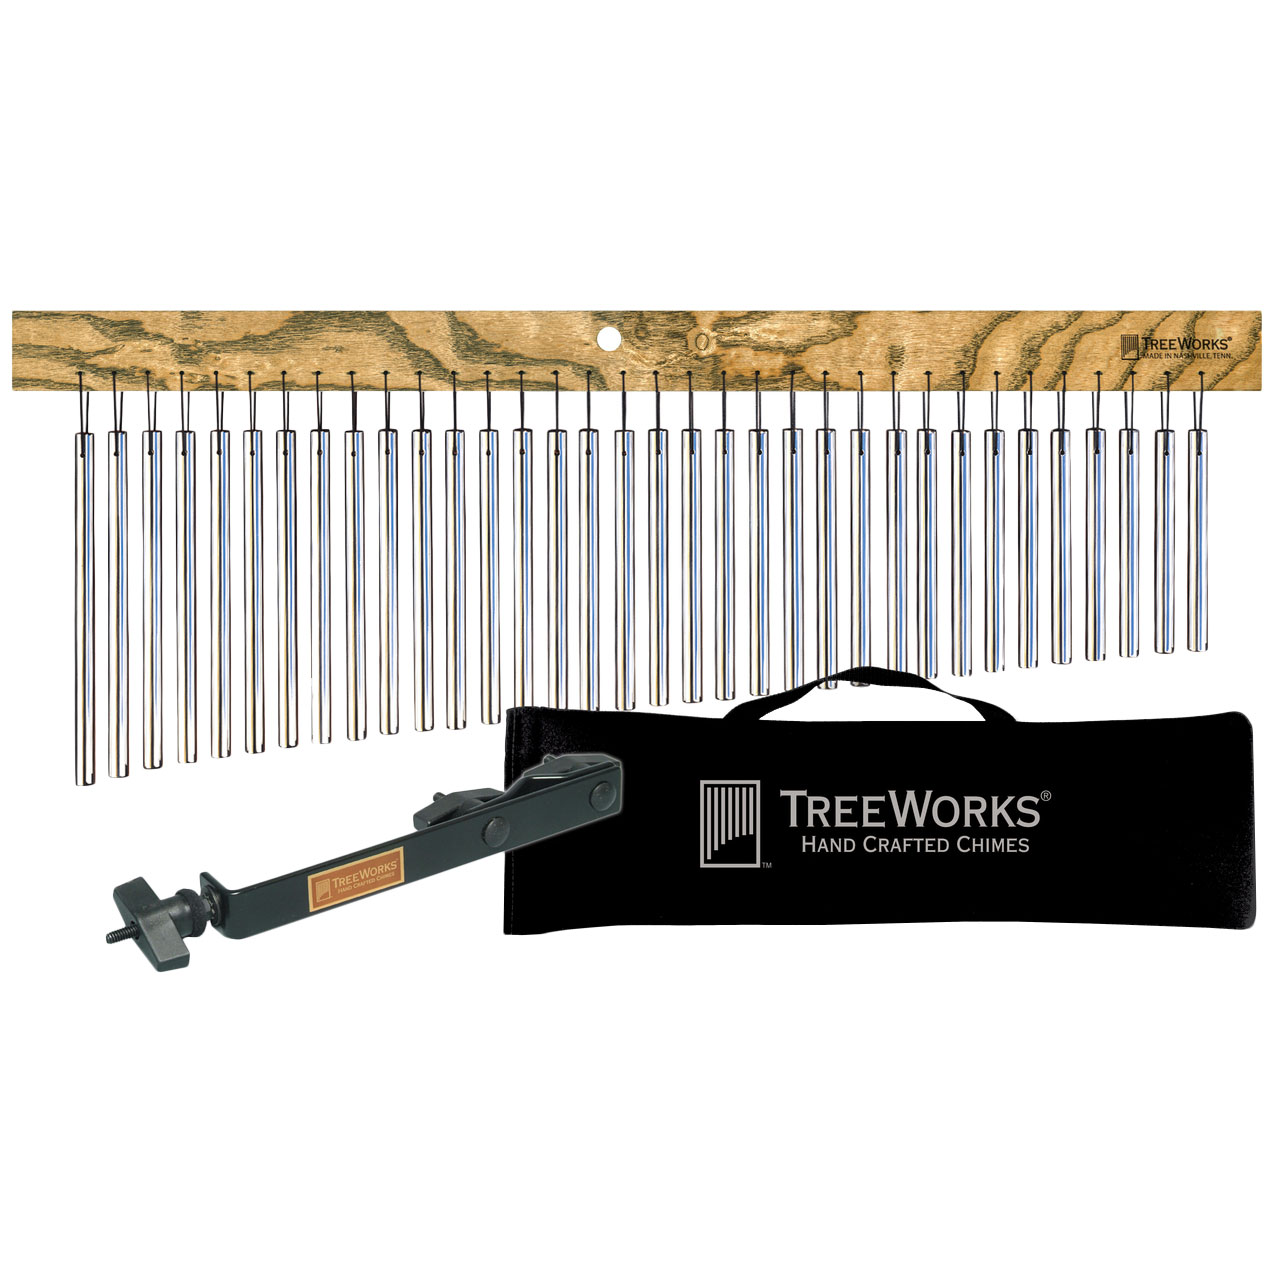 TreeWorks 35-Bar Single-Row Classic Wind Chimes (Mark Tree) Performance Kit